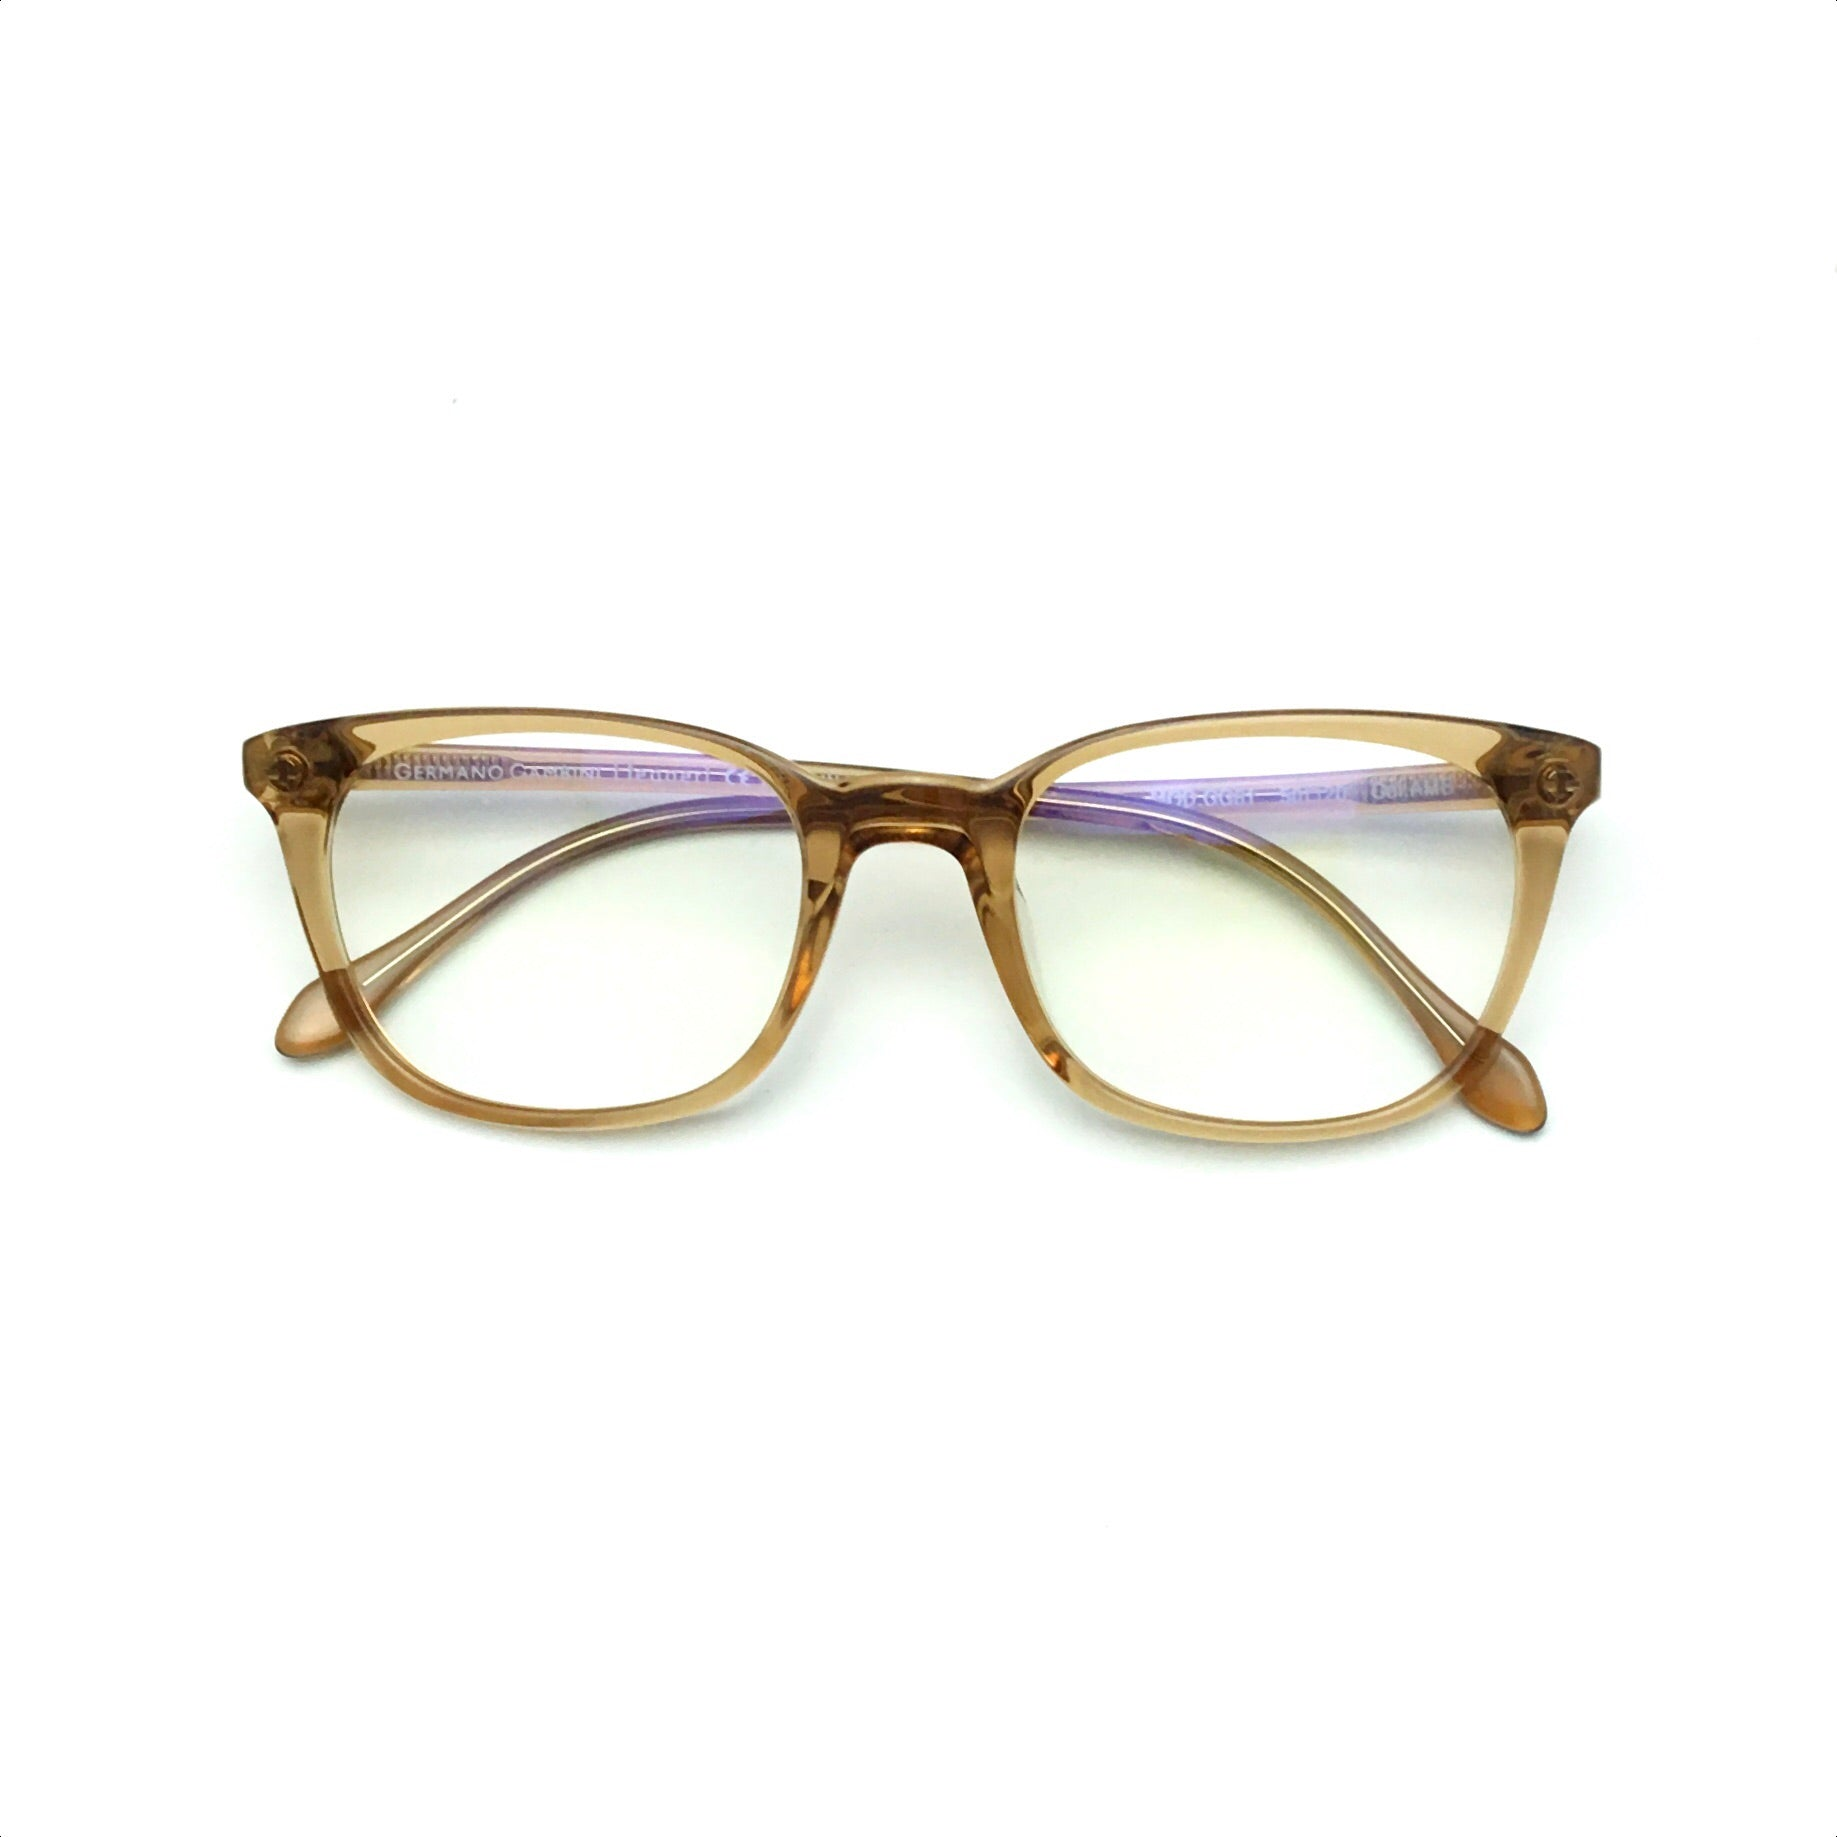 Germano gambini glasses $239 Beige M7